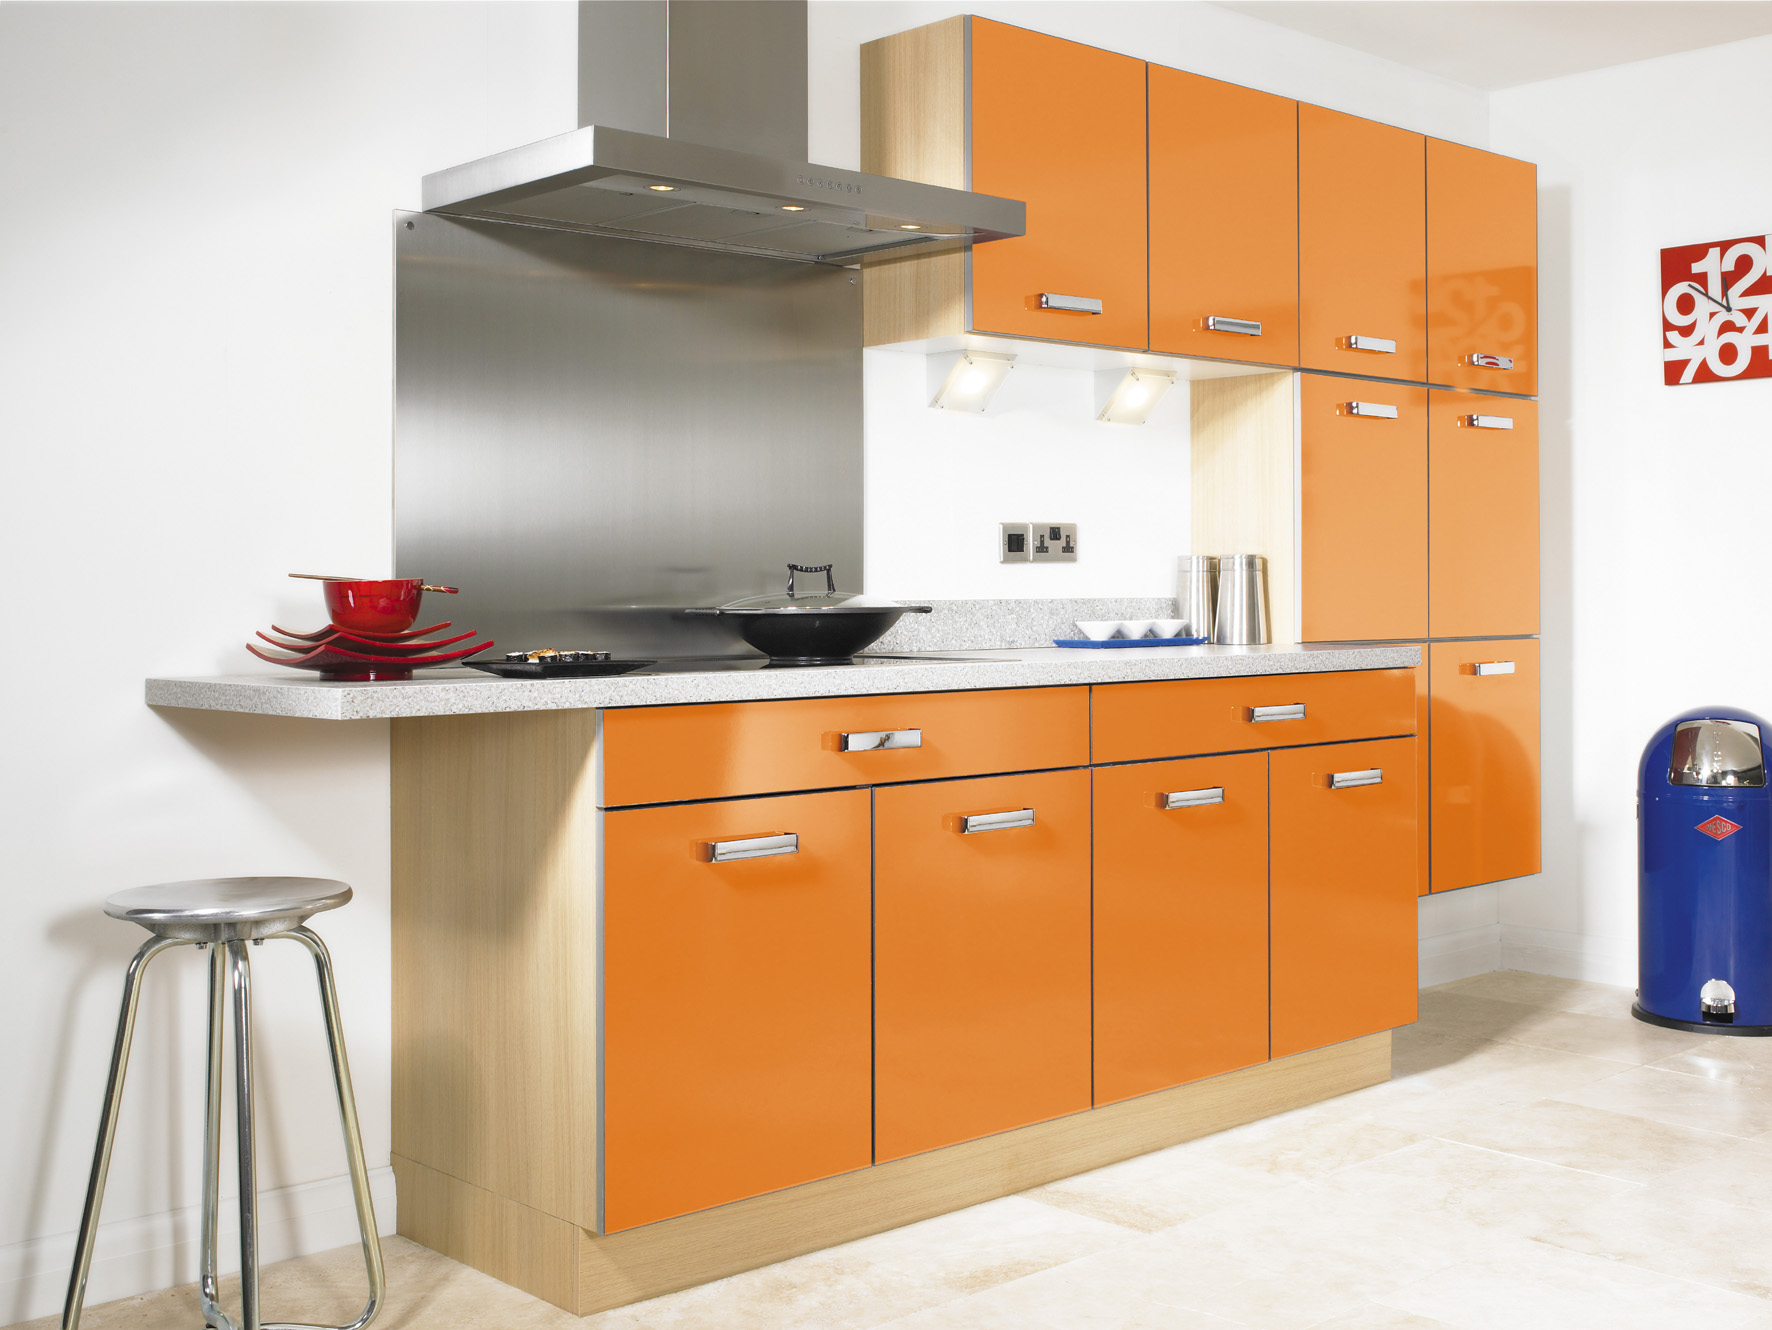 Orange kitchens Kitchen furniture ideas